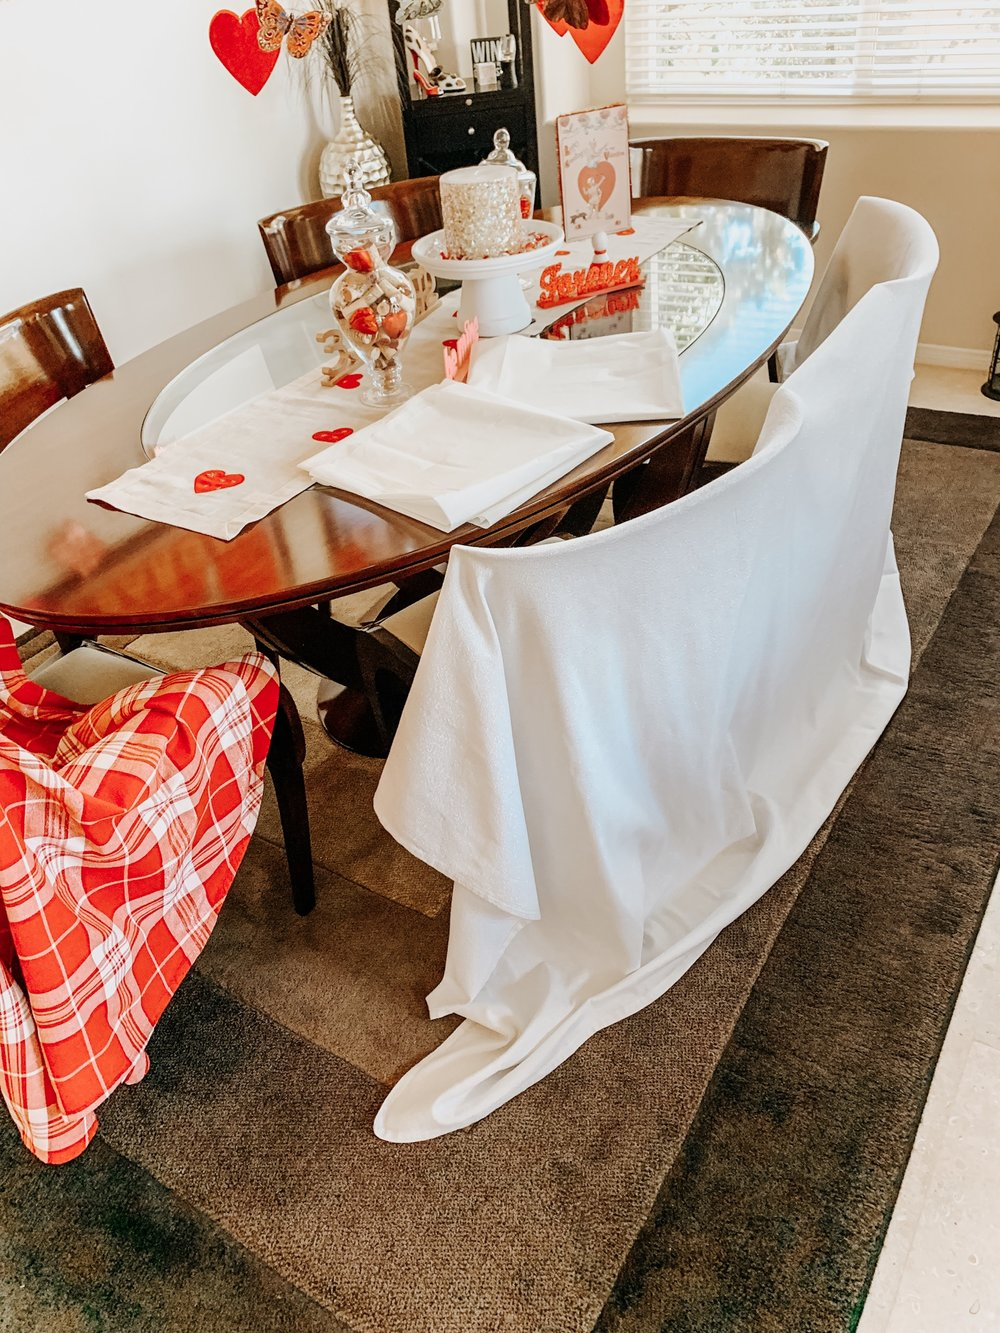 Ironed tablecloth